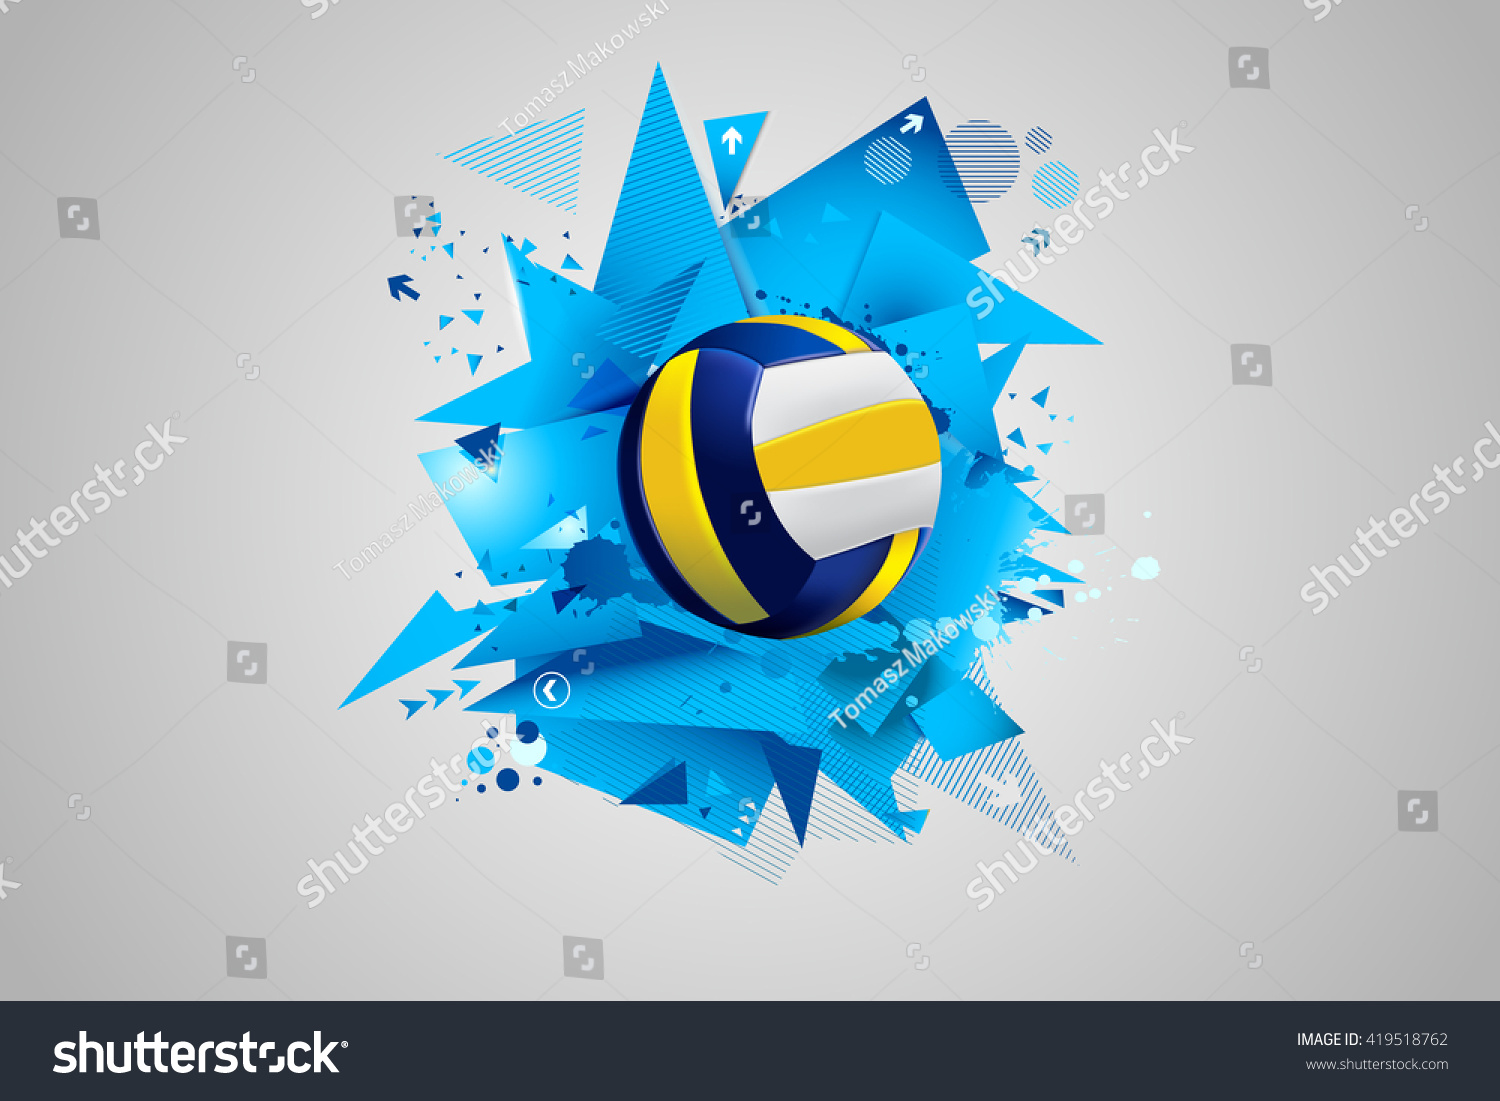 Stock Illustration Volleyball Tribal Abstract Vector: Volleyball Abstract Immagine Vettoriale Stock 419518762